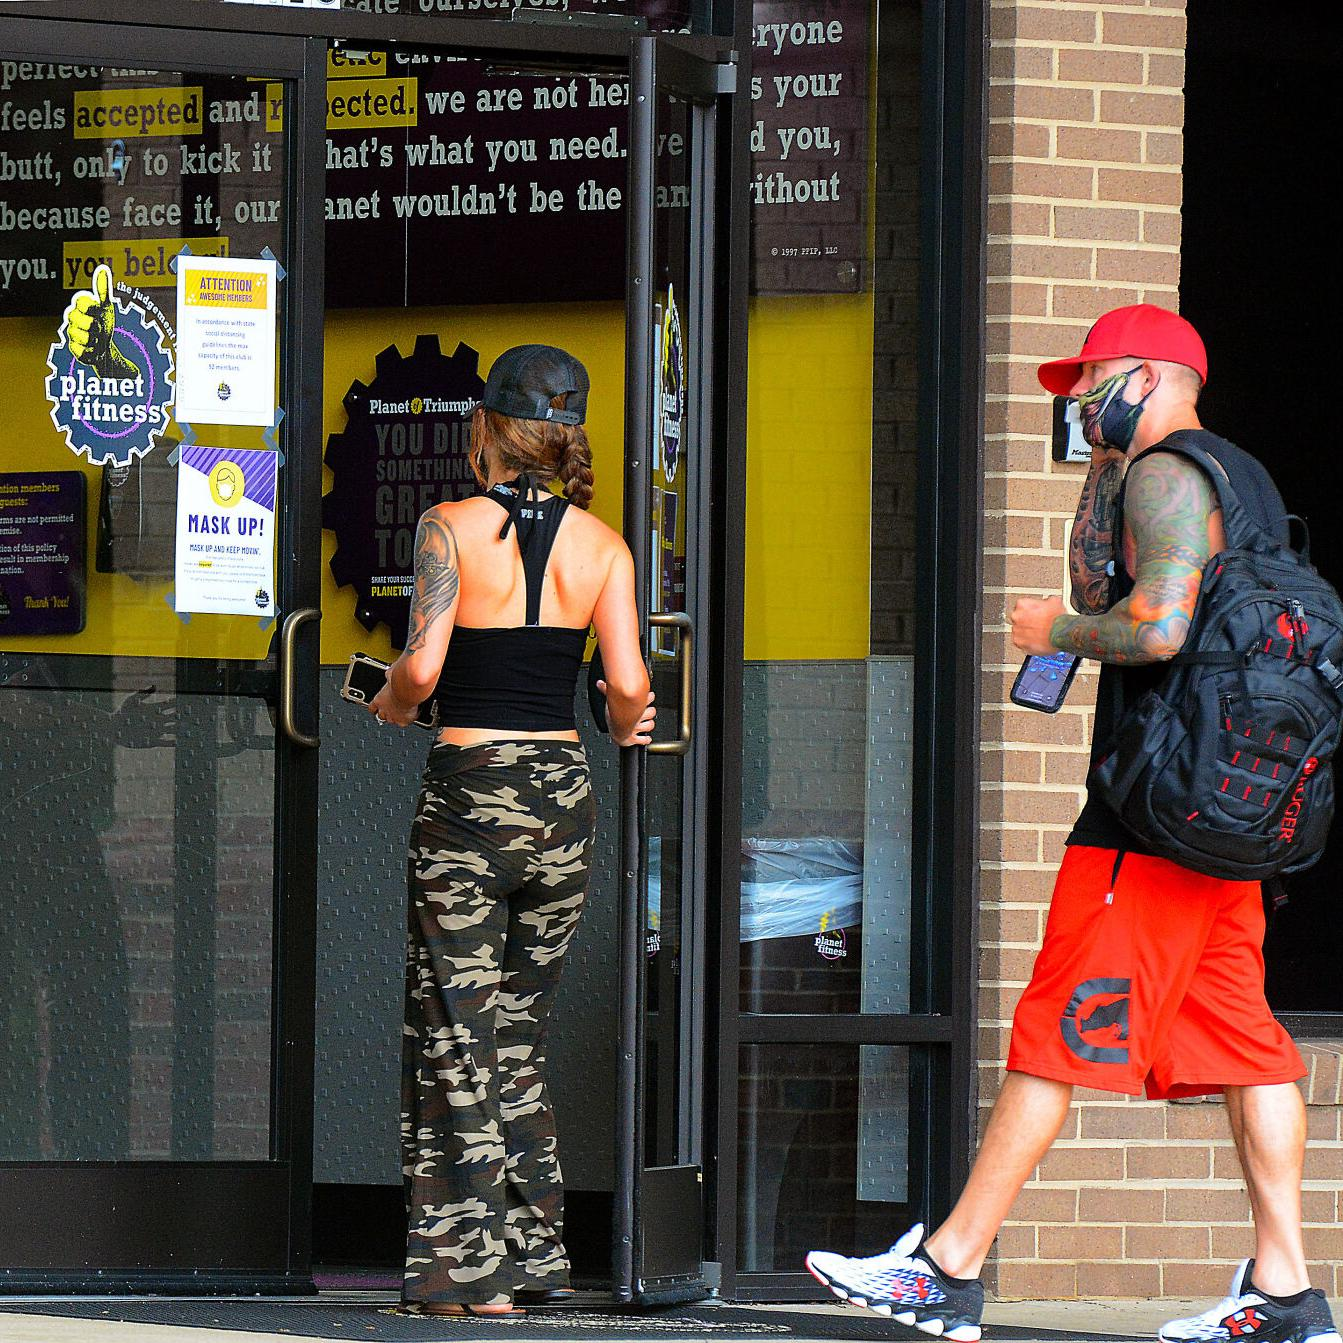 Hickory Planet Fitness Reopens With New Covid 19 Health Policies Local News Hickoryrecord Com